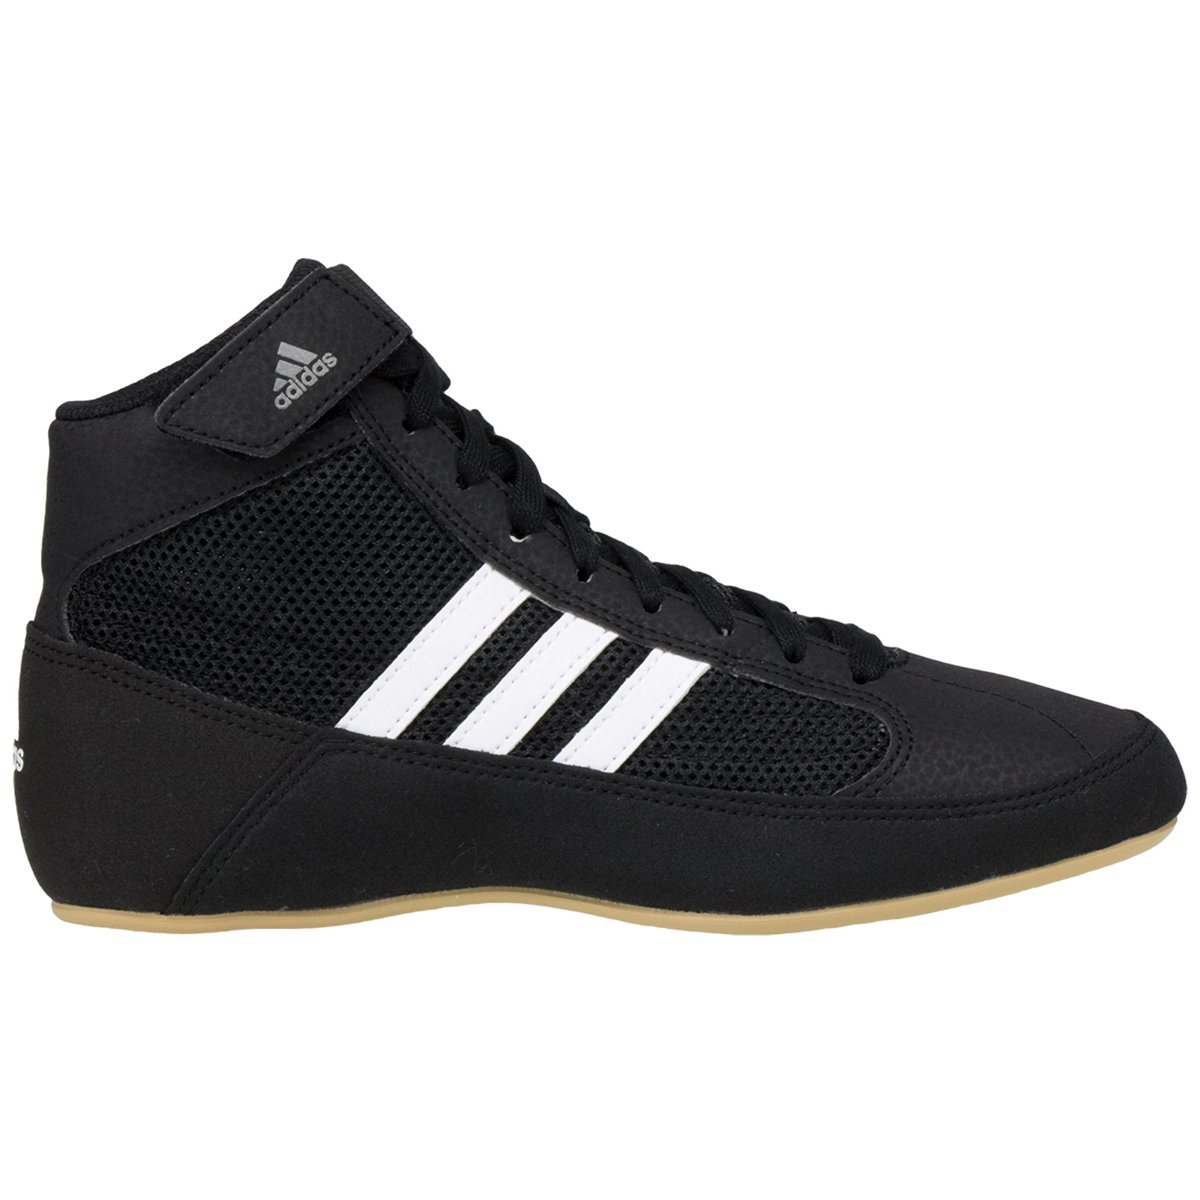 Best Boxing Shoe Reviews 2018. Adidas HVC2 Speed Shoe 2753f6a03